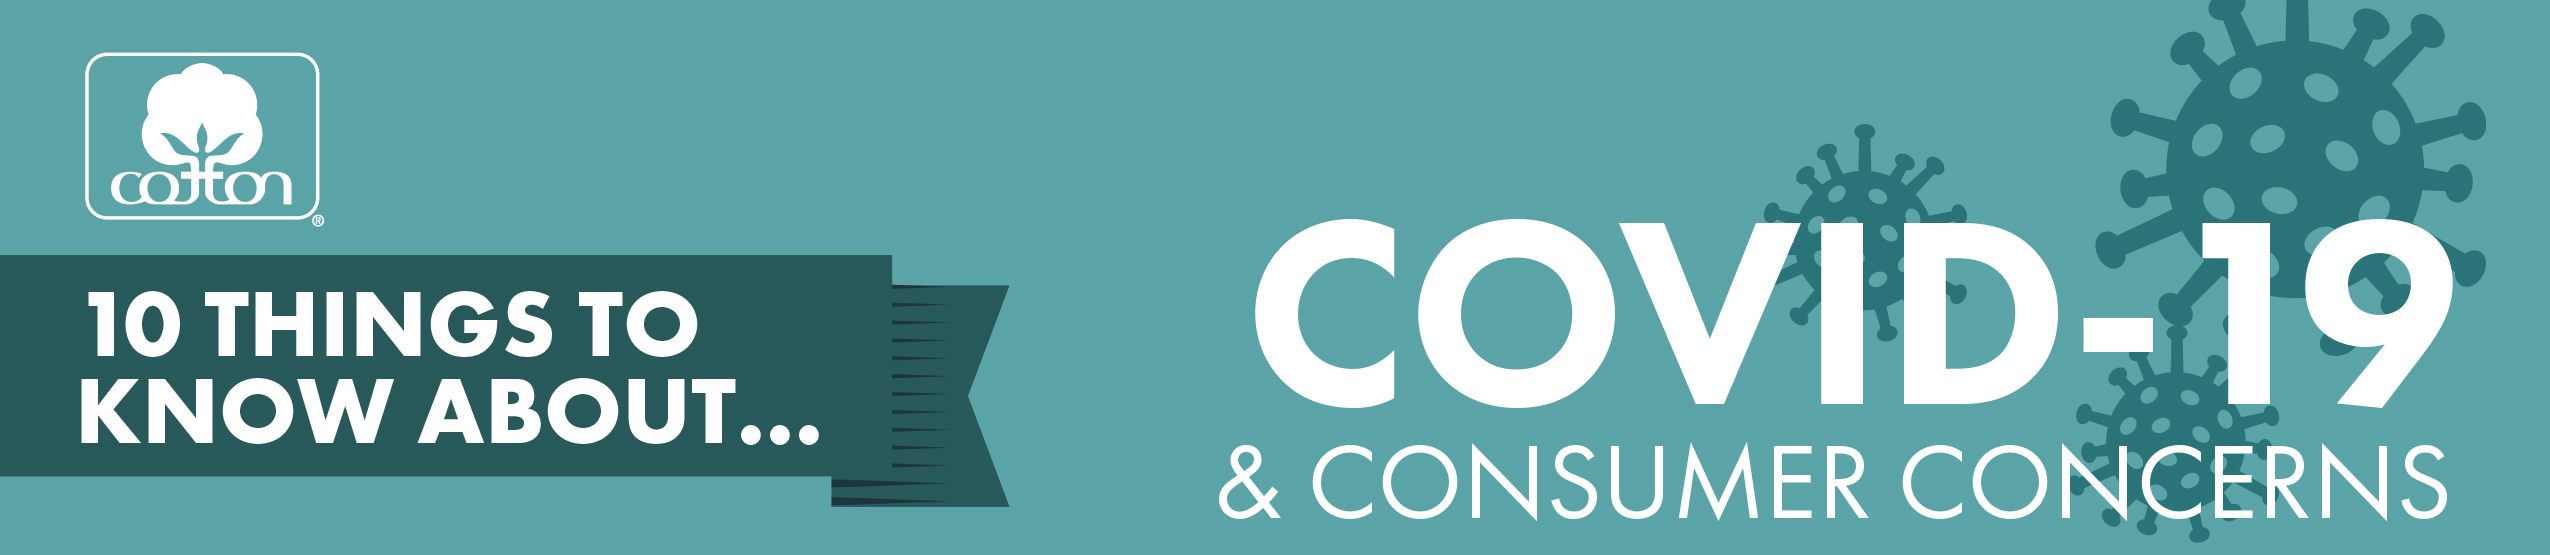 10 Facts About COVID-19 & Consumer Concerns